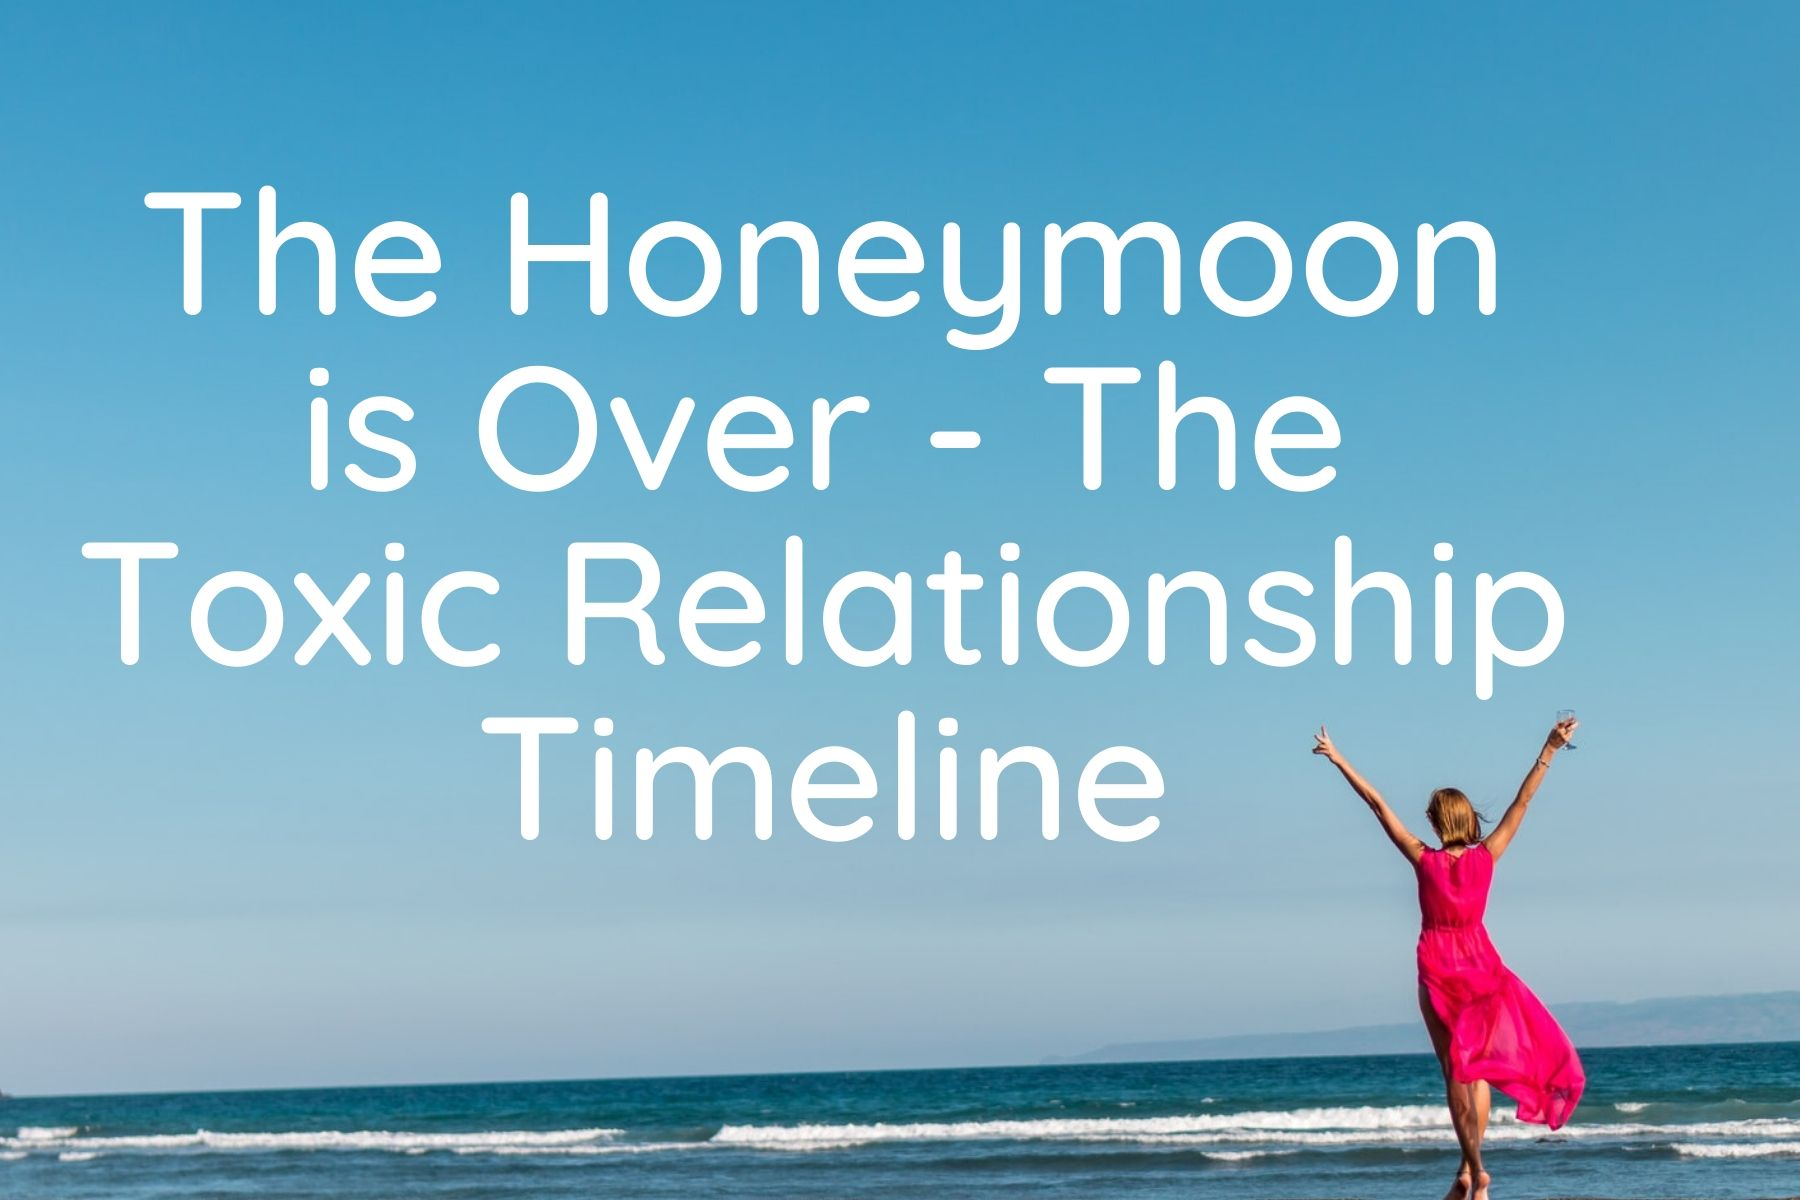 The Honeymoon is Over – The Toxic Relationship Timeline